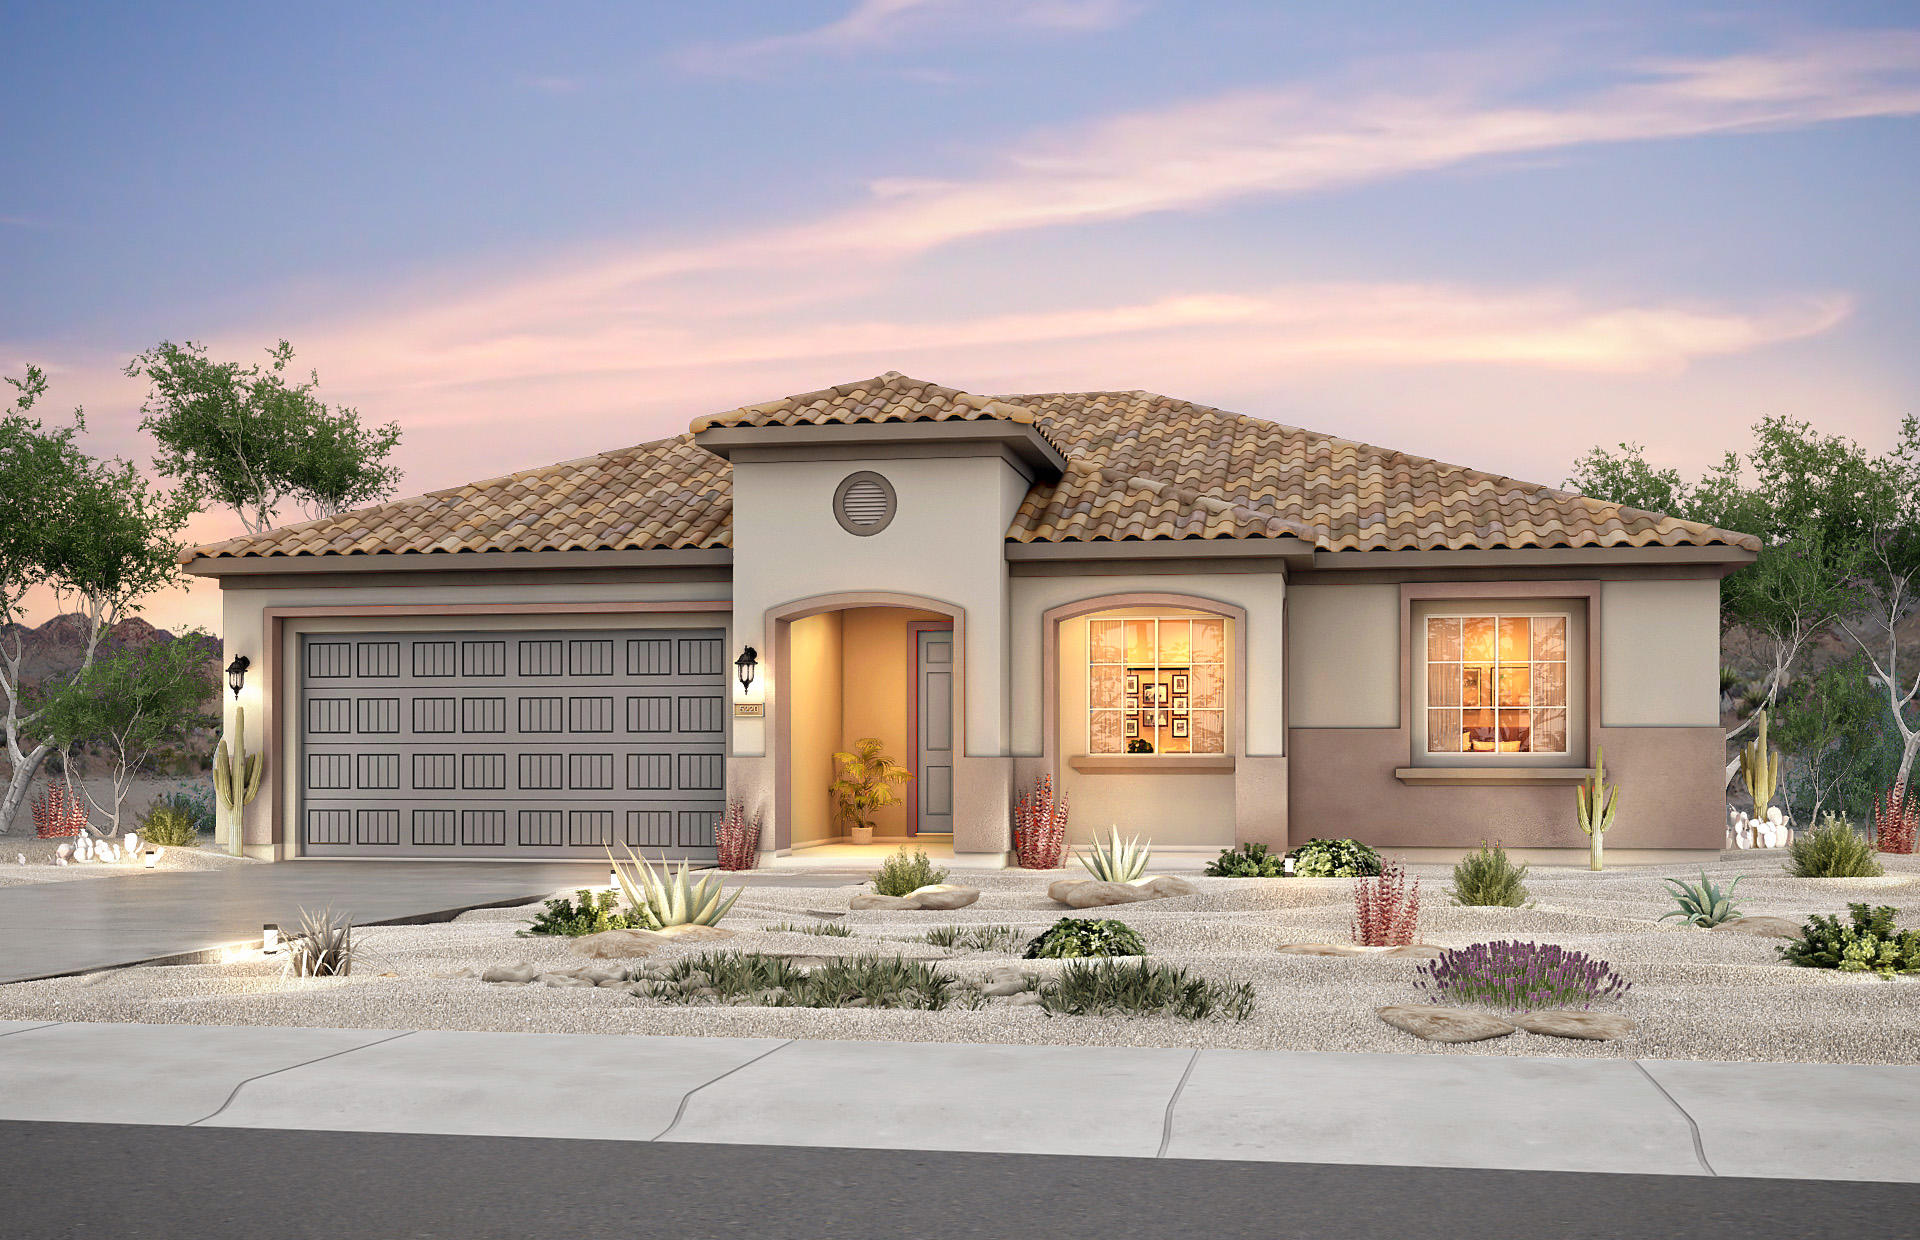 Brand new, never lived-in Pursuit floorplan in our premier 55+ active adult community, Del Webb Mirehaven. Enjoy brand new appliances, new carpet, new A/C, new tankless water heater and so much more! Home features include tile in extended areas, chef kitchen with built in appliances, exterior fireplace, and granite countertops. This community boasts resort style amenities such as a junior Olympic swimming pool, spa, fitness room, sports courts, walking & biking trails, and more!